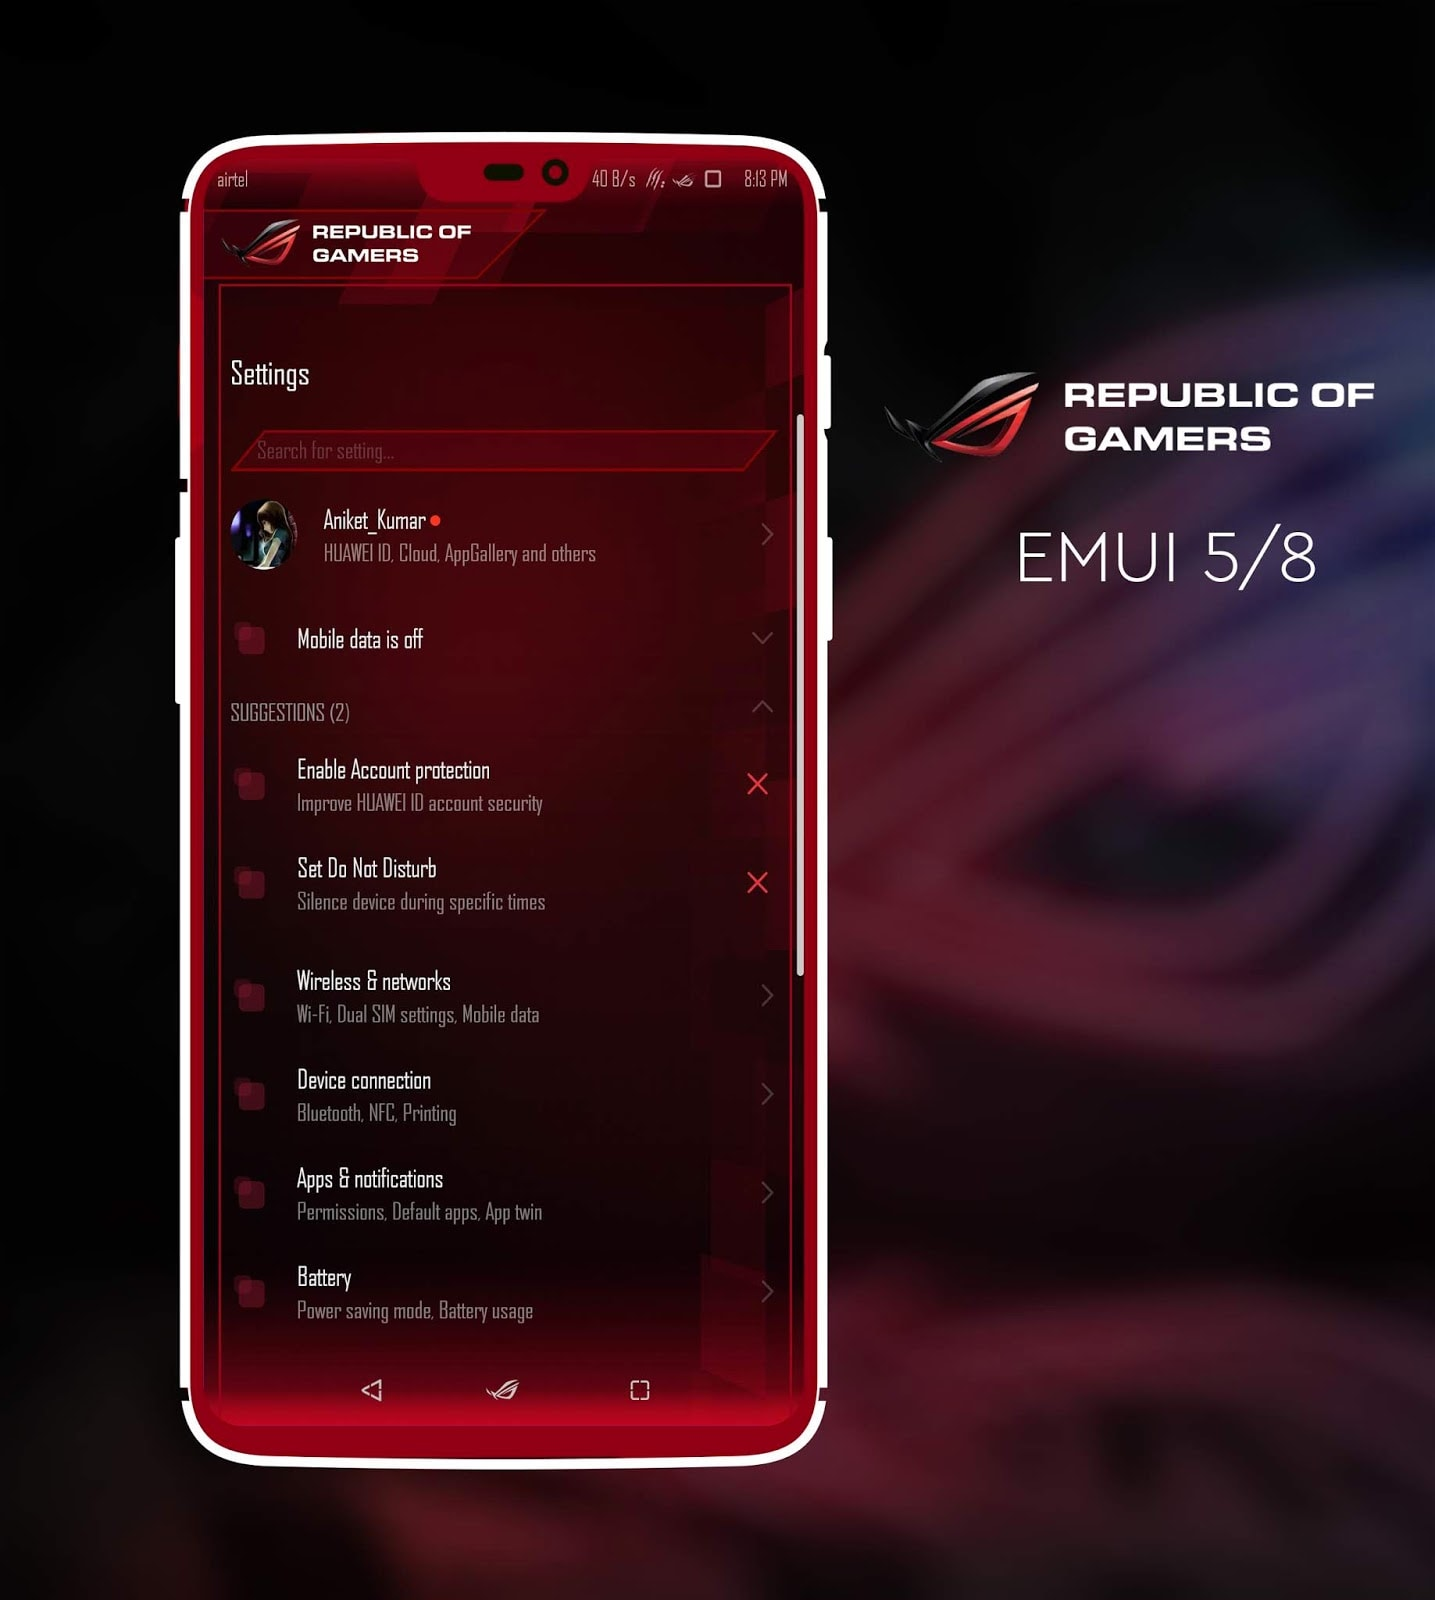 Asus ROG EMUI Theme Screens 3